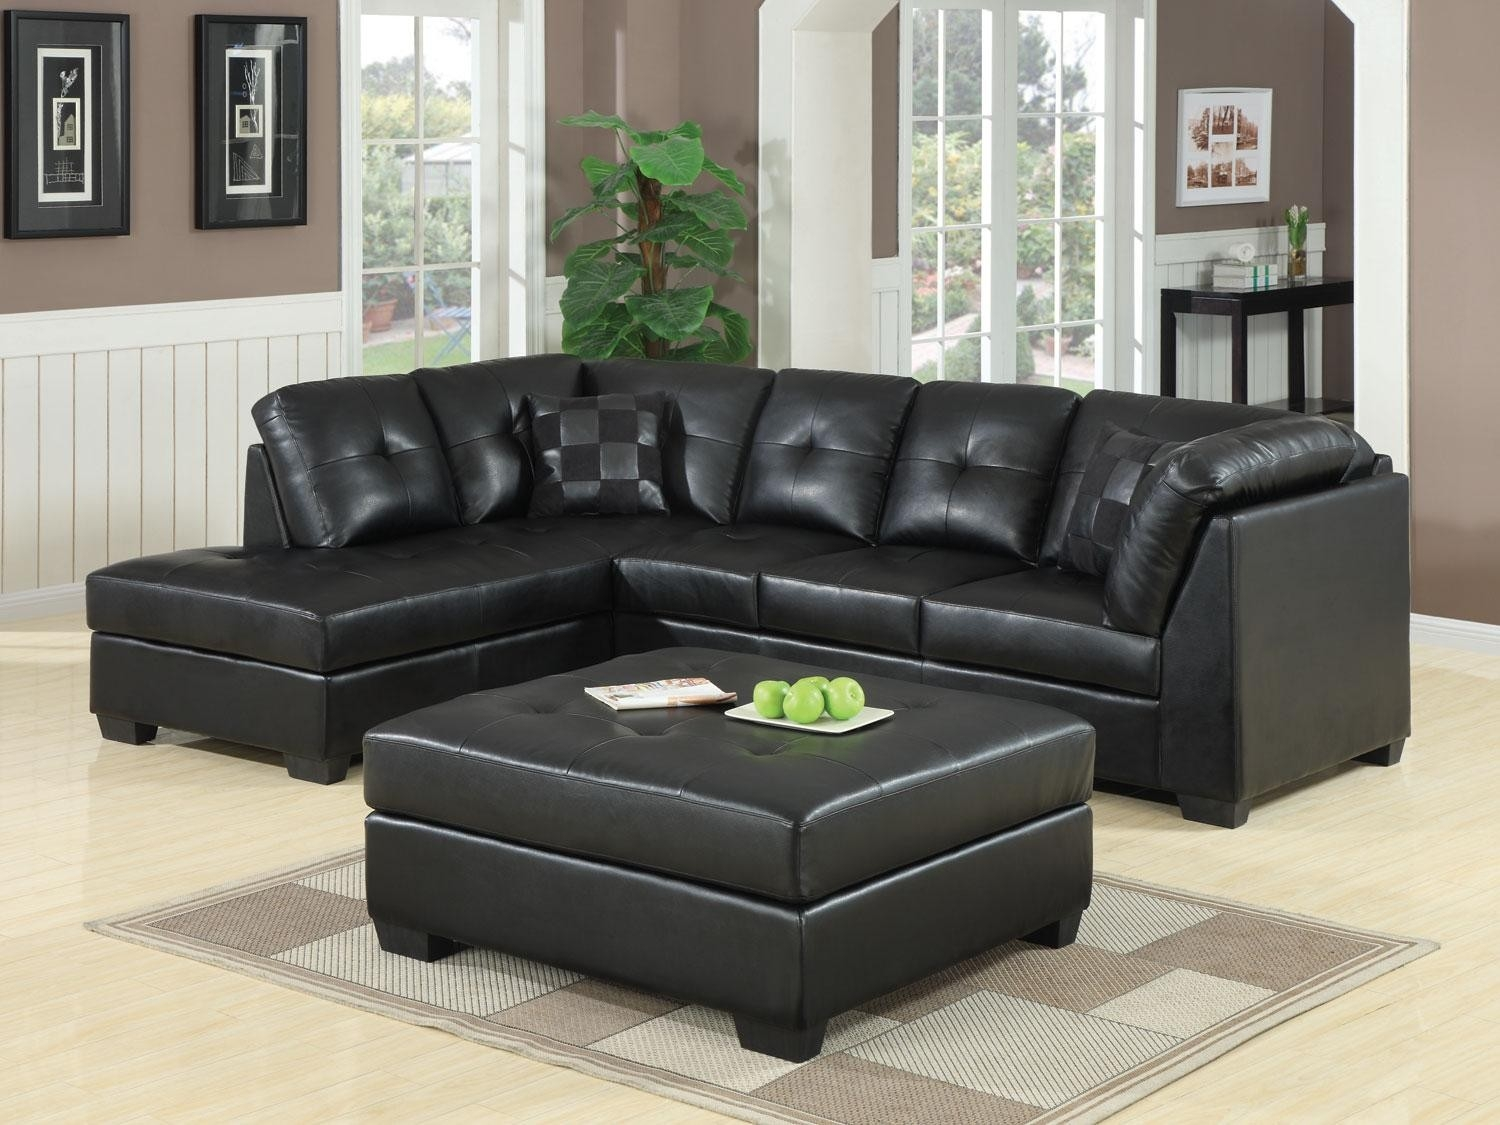 Black Leather Sectional Sofa With Chaise Hereo Sofa Within Contemporary Black Leather Sectional Sofa Left Side Chaise (Image 1 of 15)